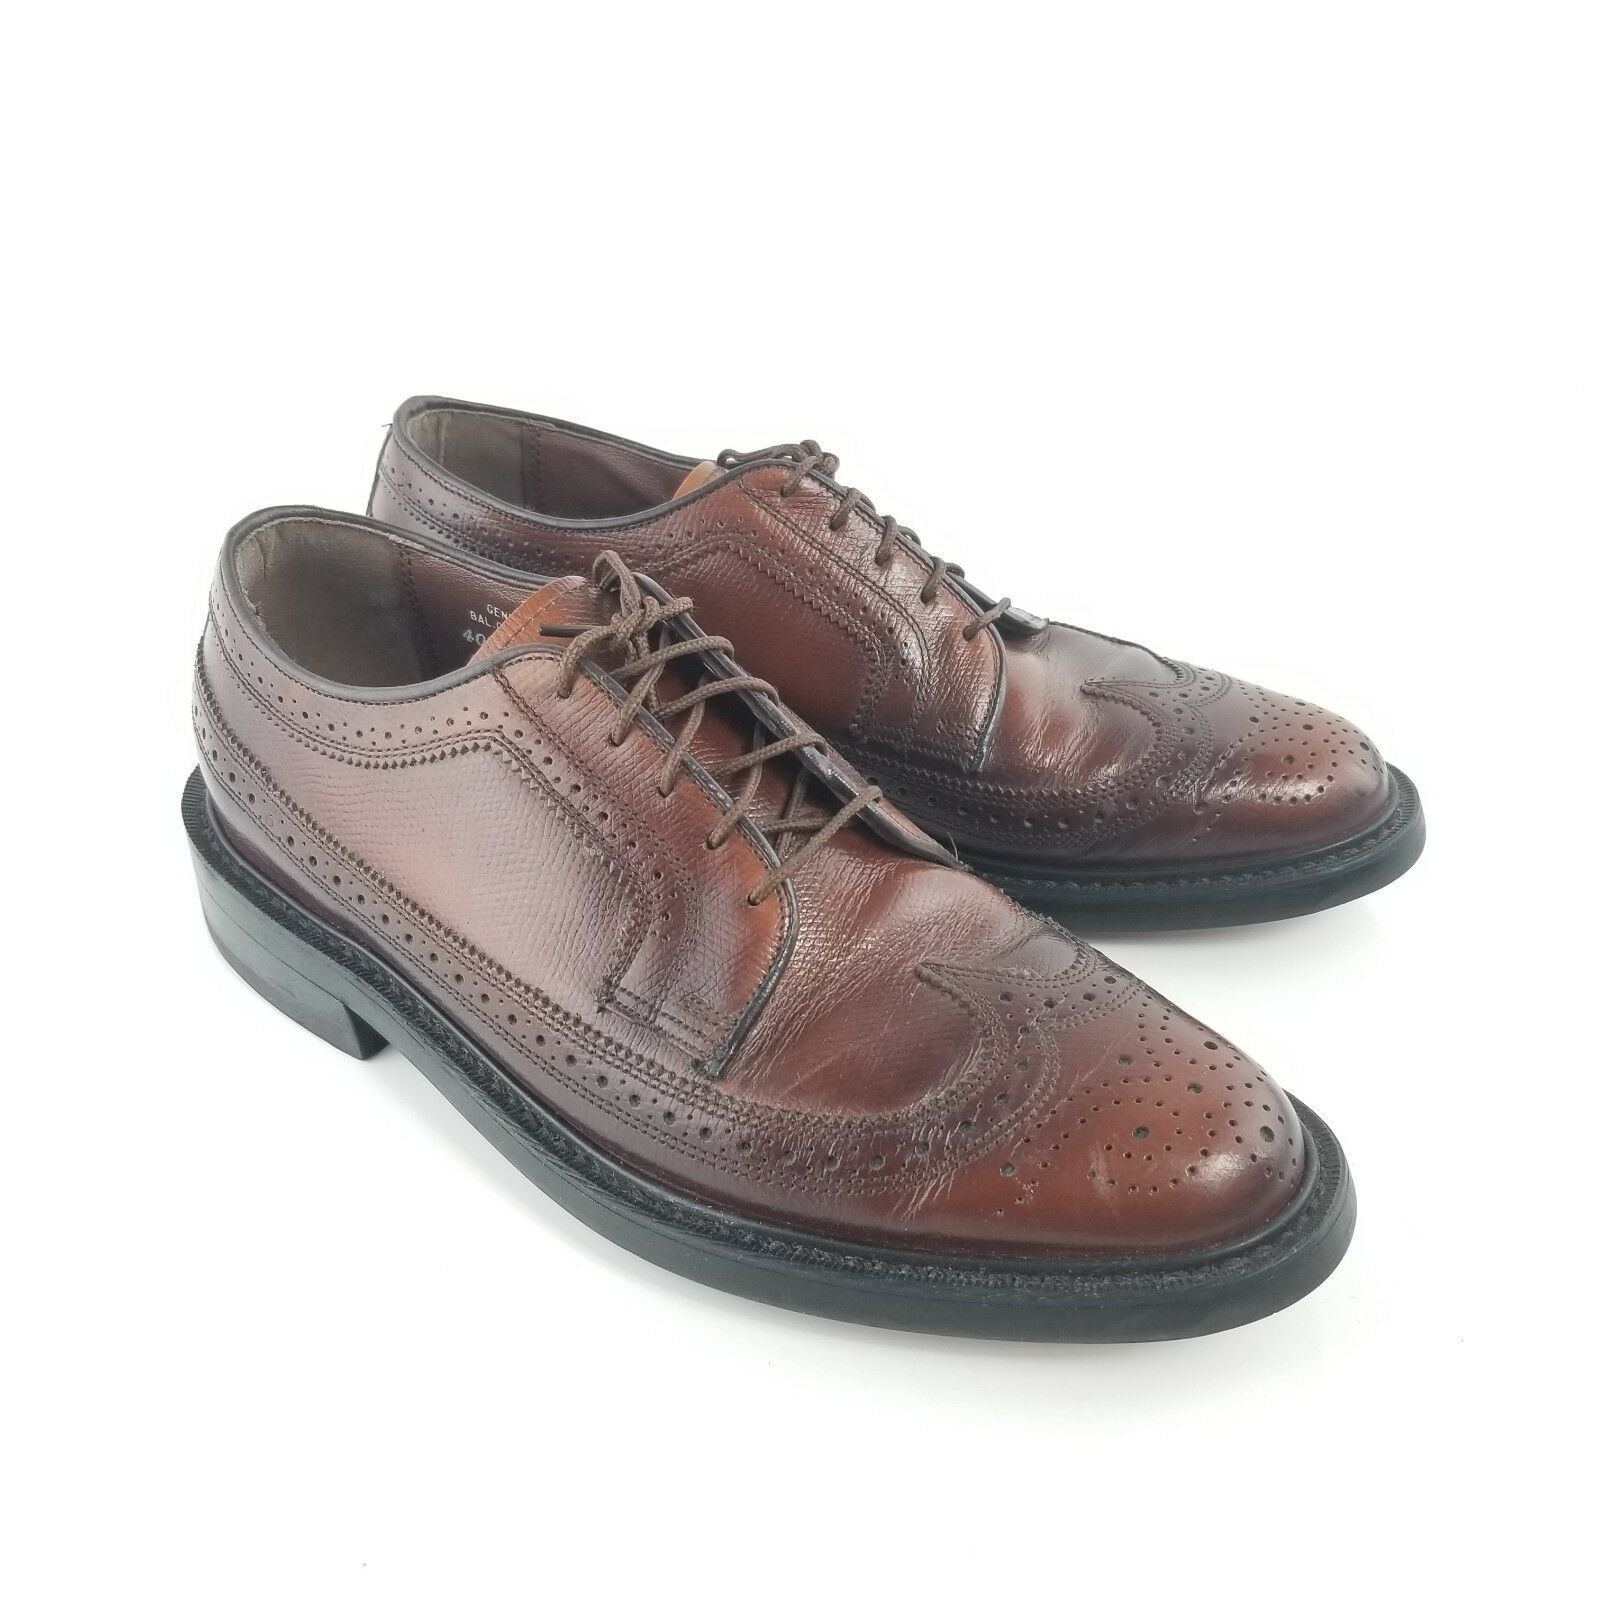 Vintage Thom McAn Leather Wing Tip Oxford Brown Dress shoes Made In USA Size 8.5